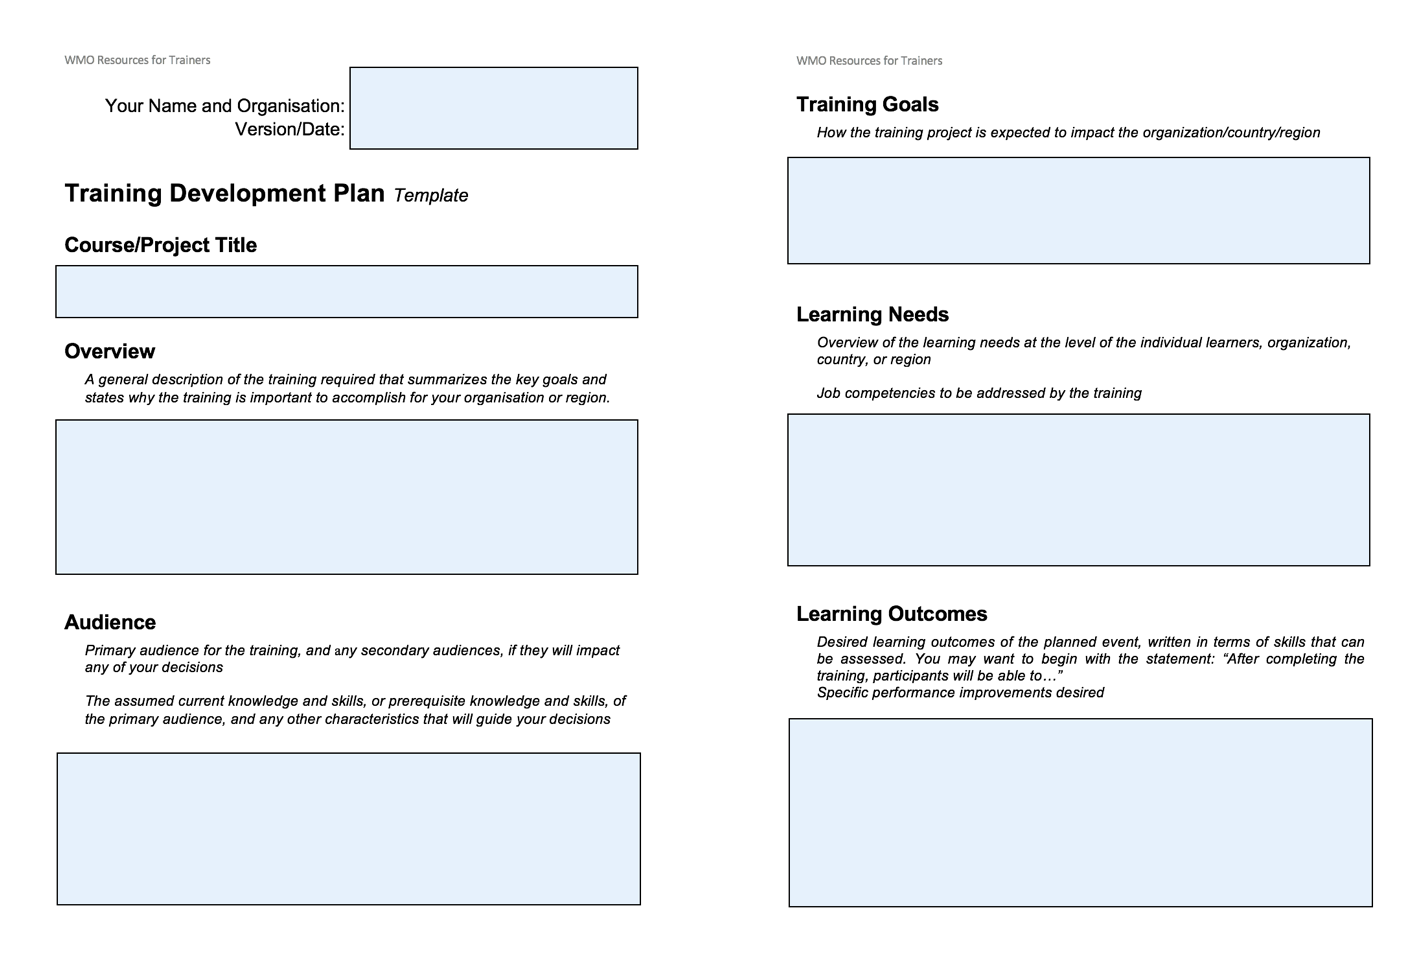 Figure 1: Pages one and two of the Training Development Plan template used in 2019